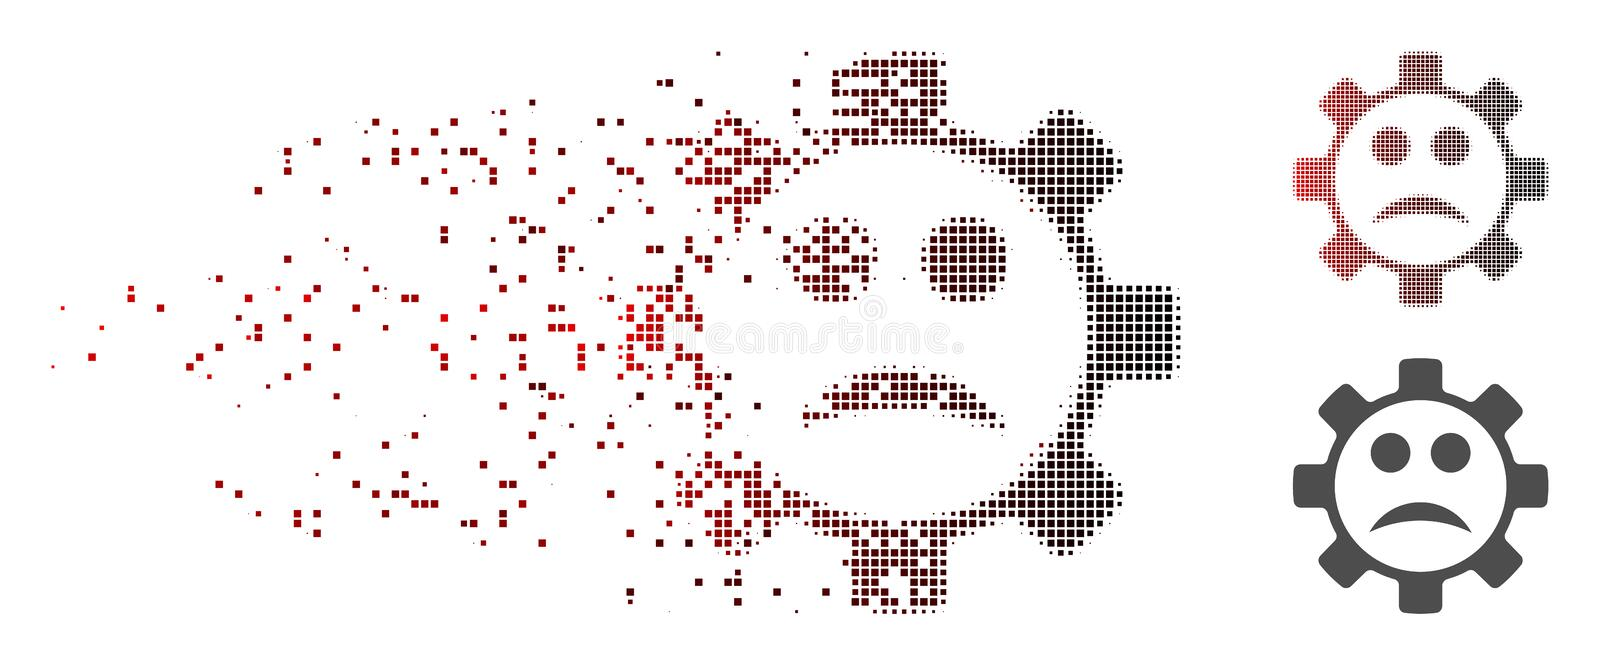 Sparkle Pixel Halftone Service Gear Sad Smiley Icon. Vector service gear sad smiley icon in sparkle, dotted halftone with red to black horizontal gradient and vector illustration